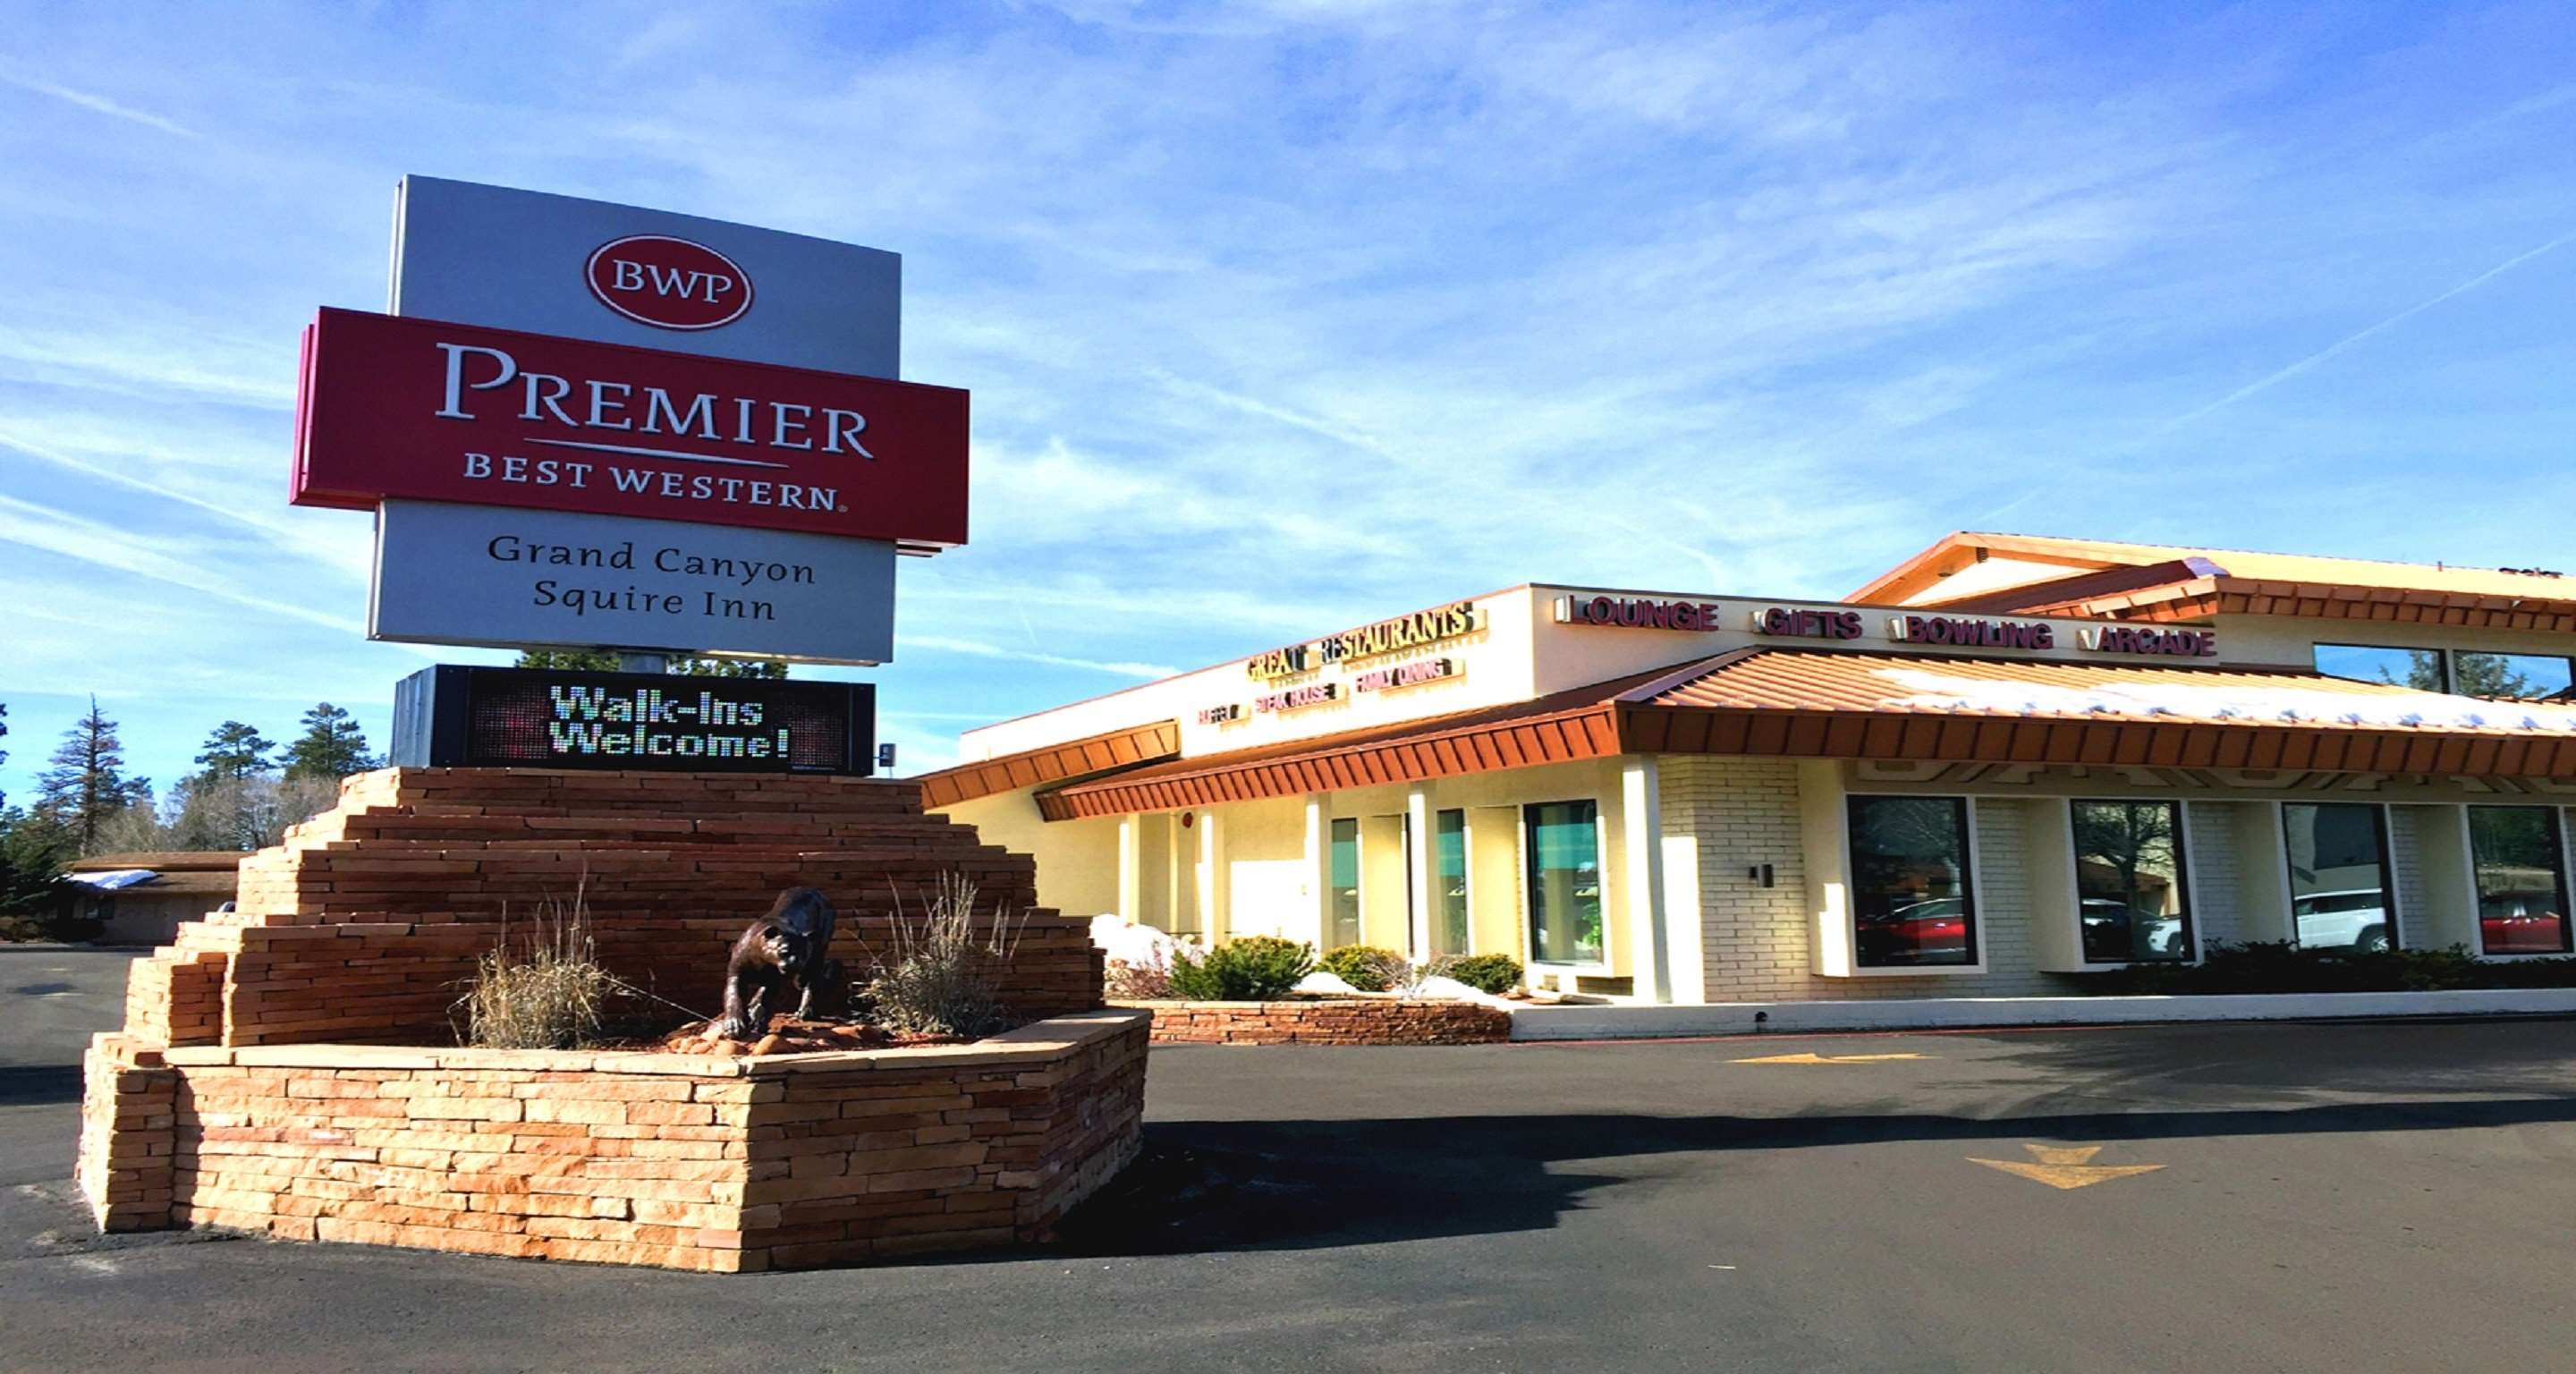 Best Western Premier Grand Canyon Squire Inn image 0